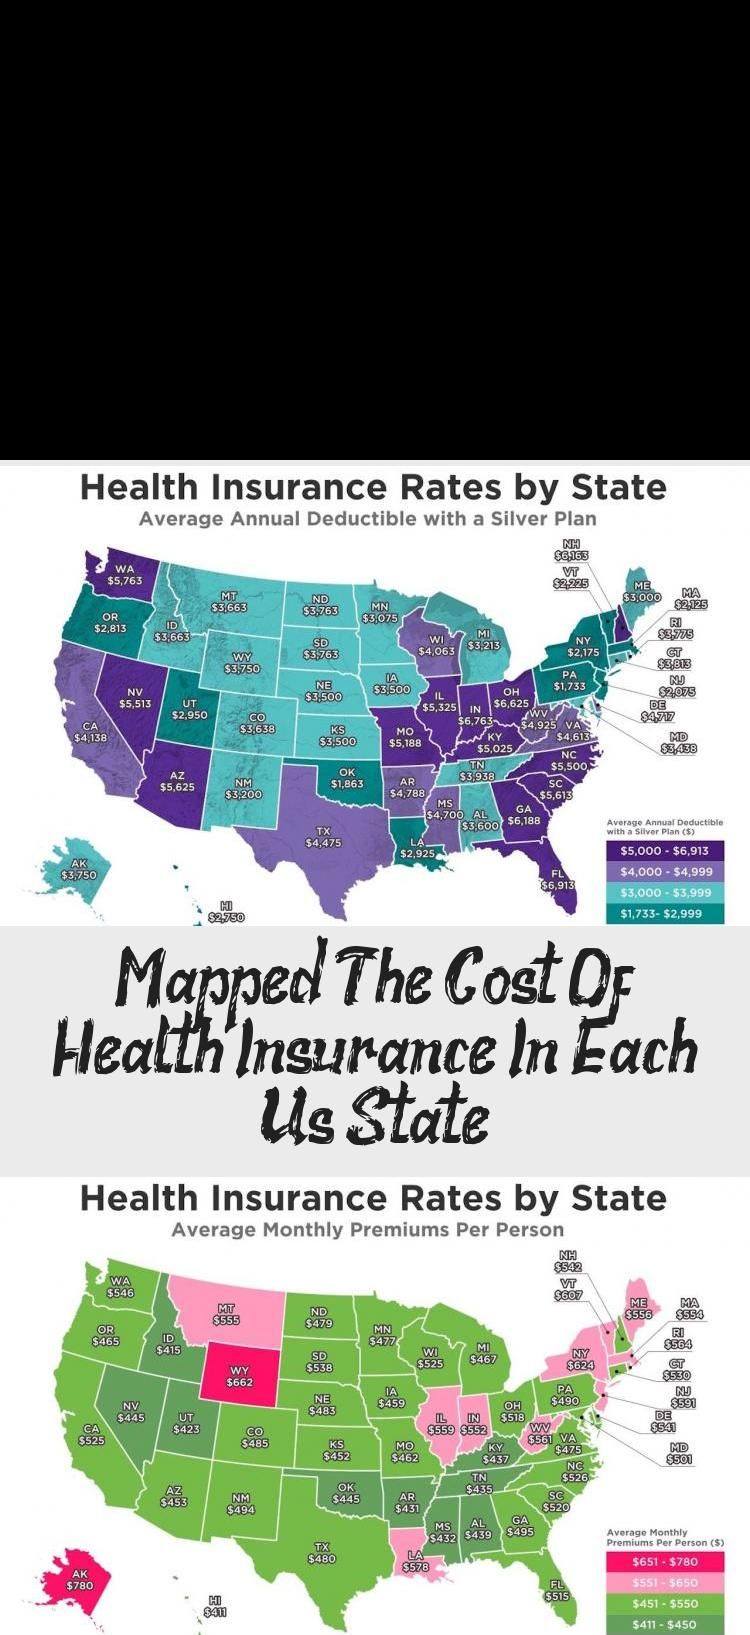 Mapped The Cost Of Health Insurance In Each Us State